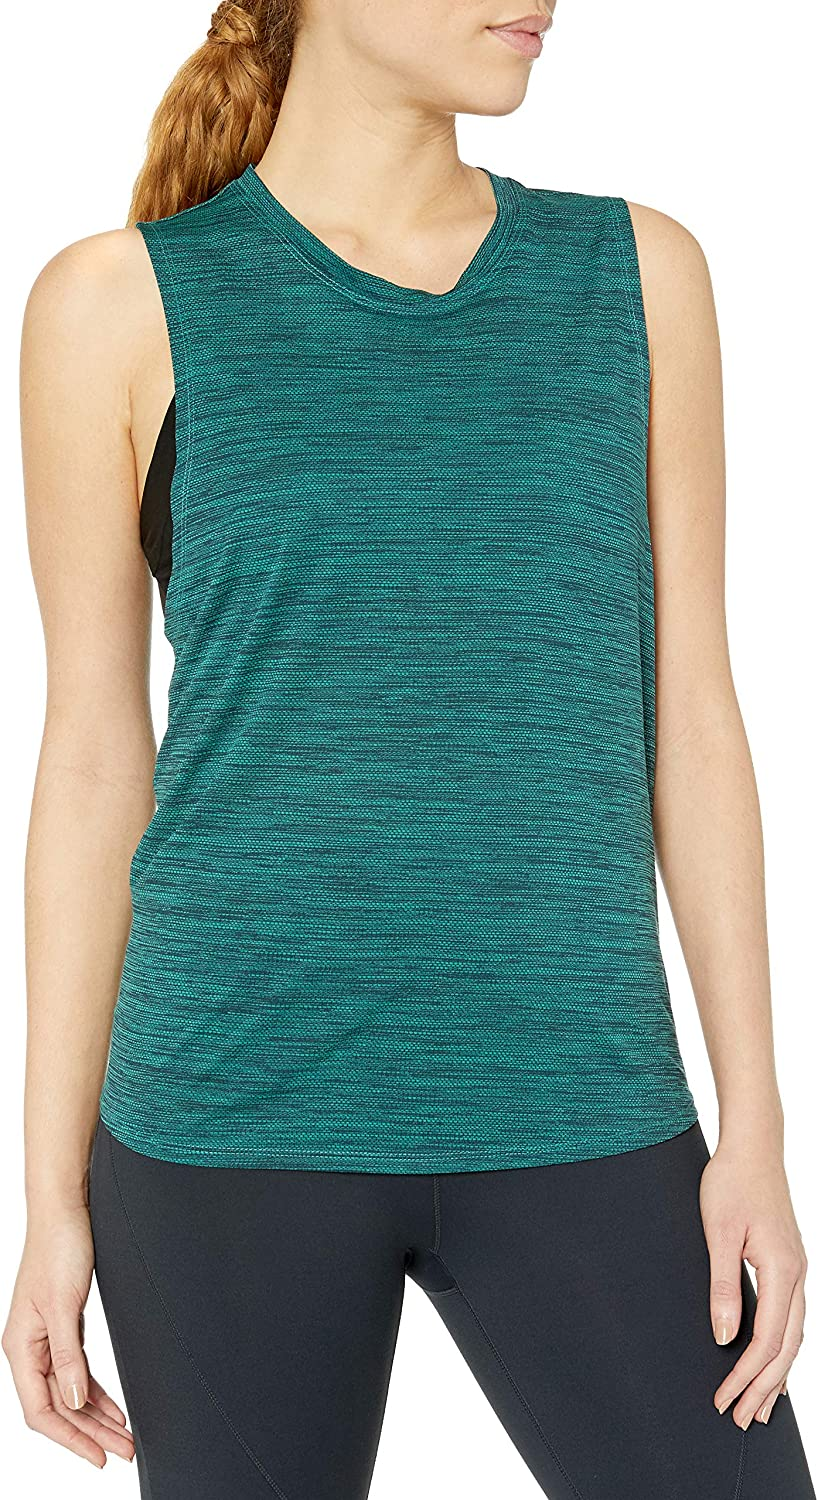 Core 10 Women's Standard Jacquard Mesh Muscle Sleeveless Tank